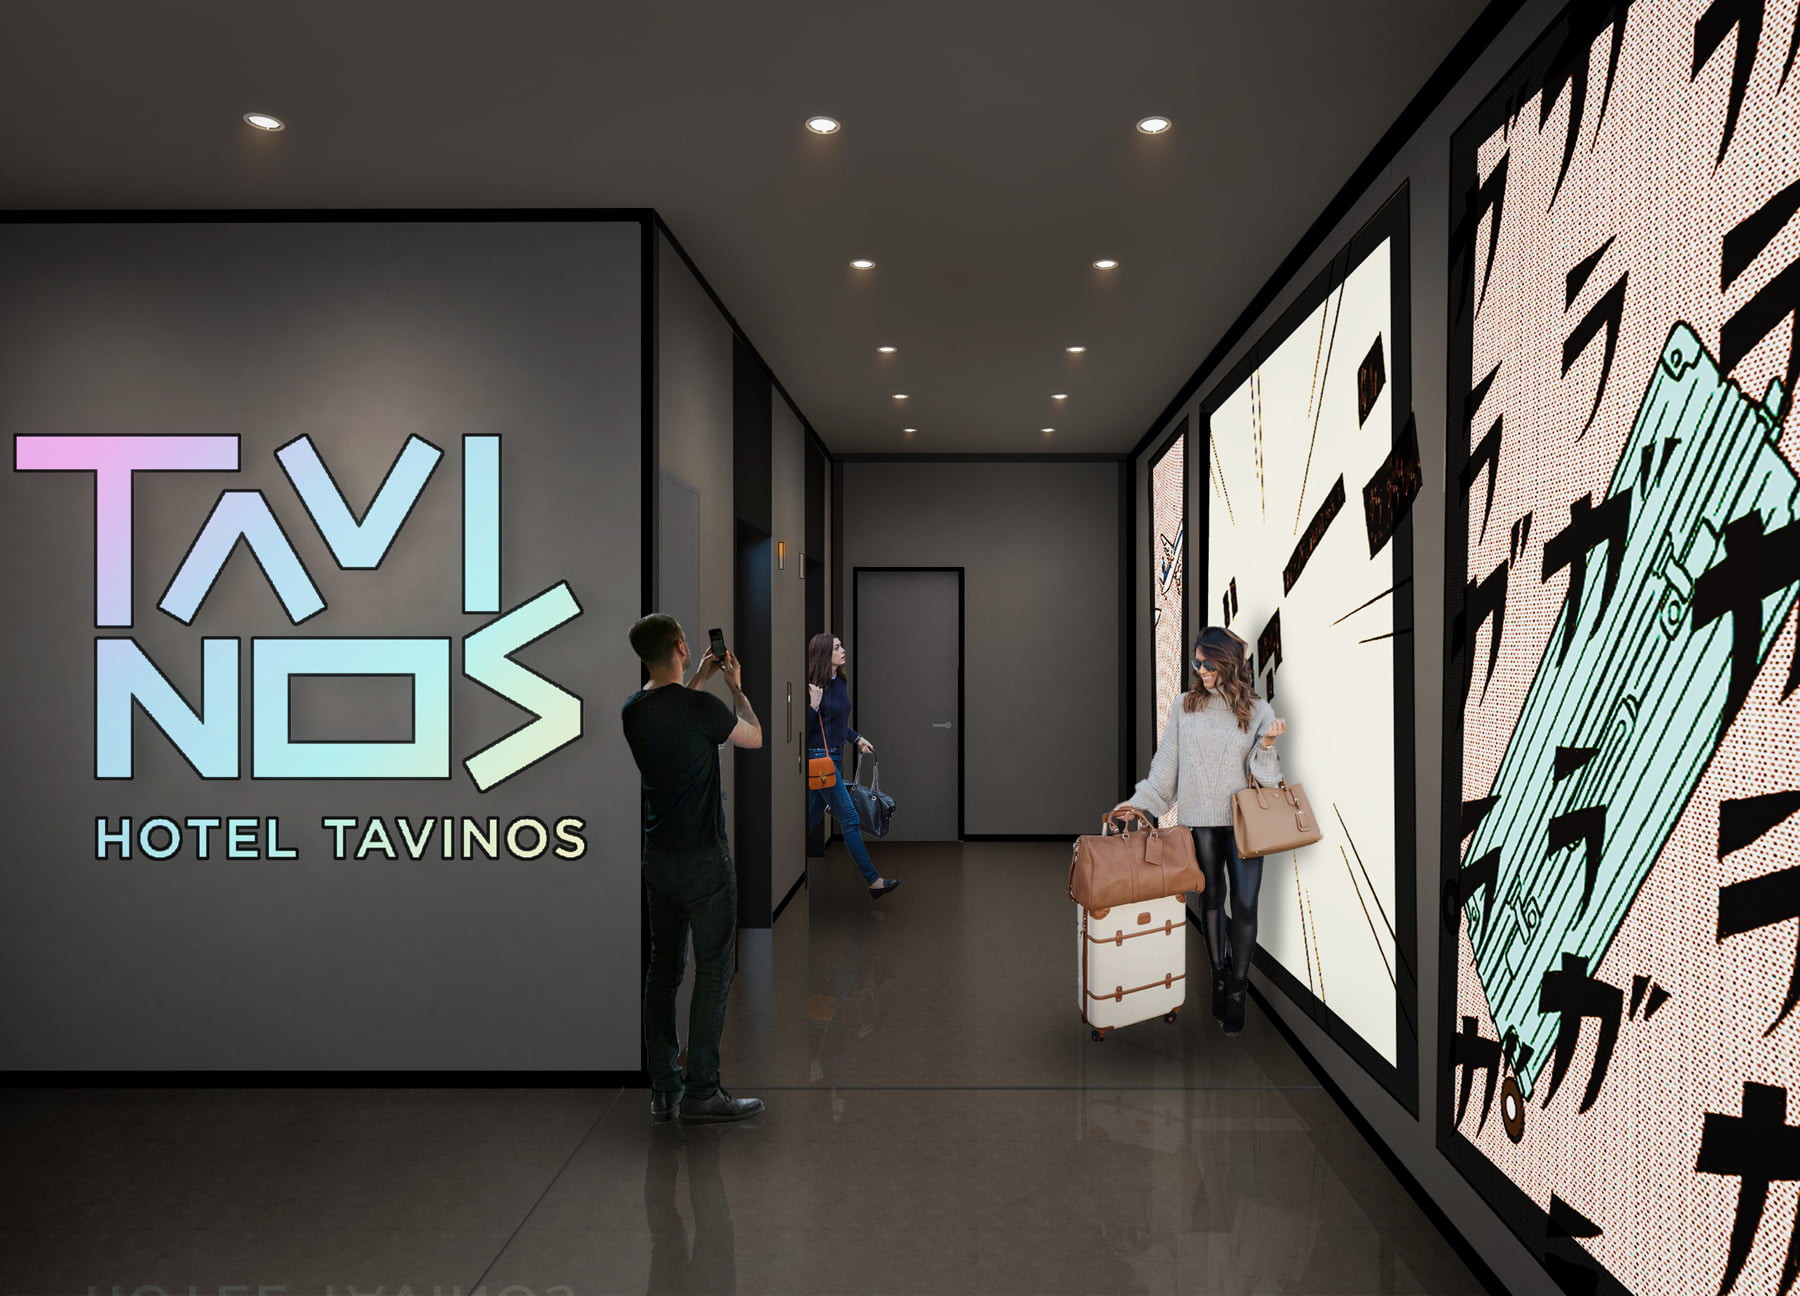 HOTEL TAVINOS website is now live!